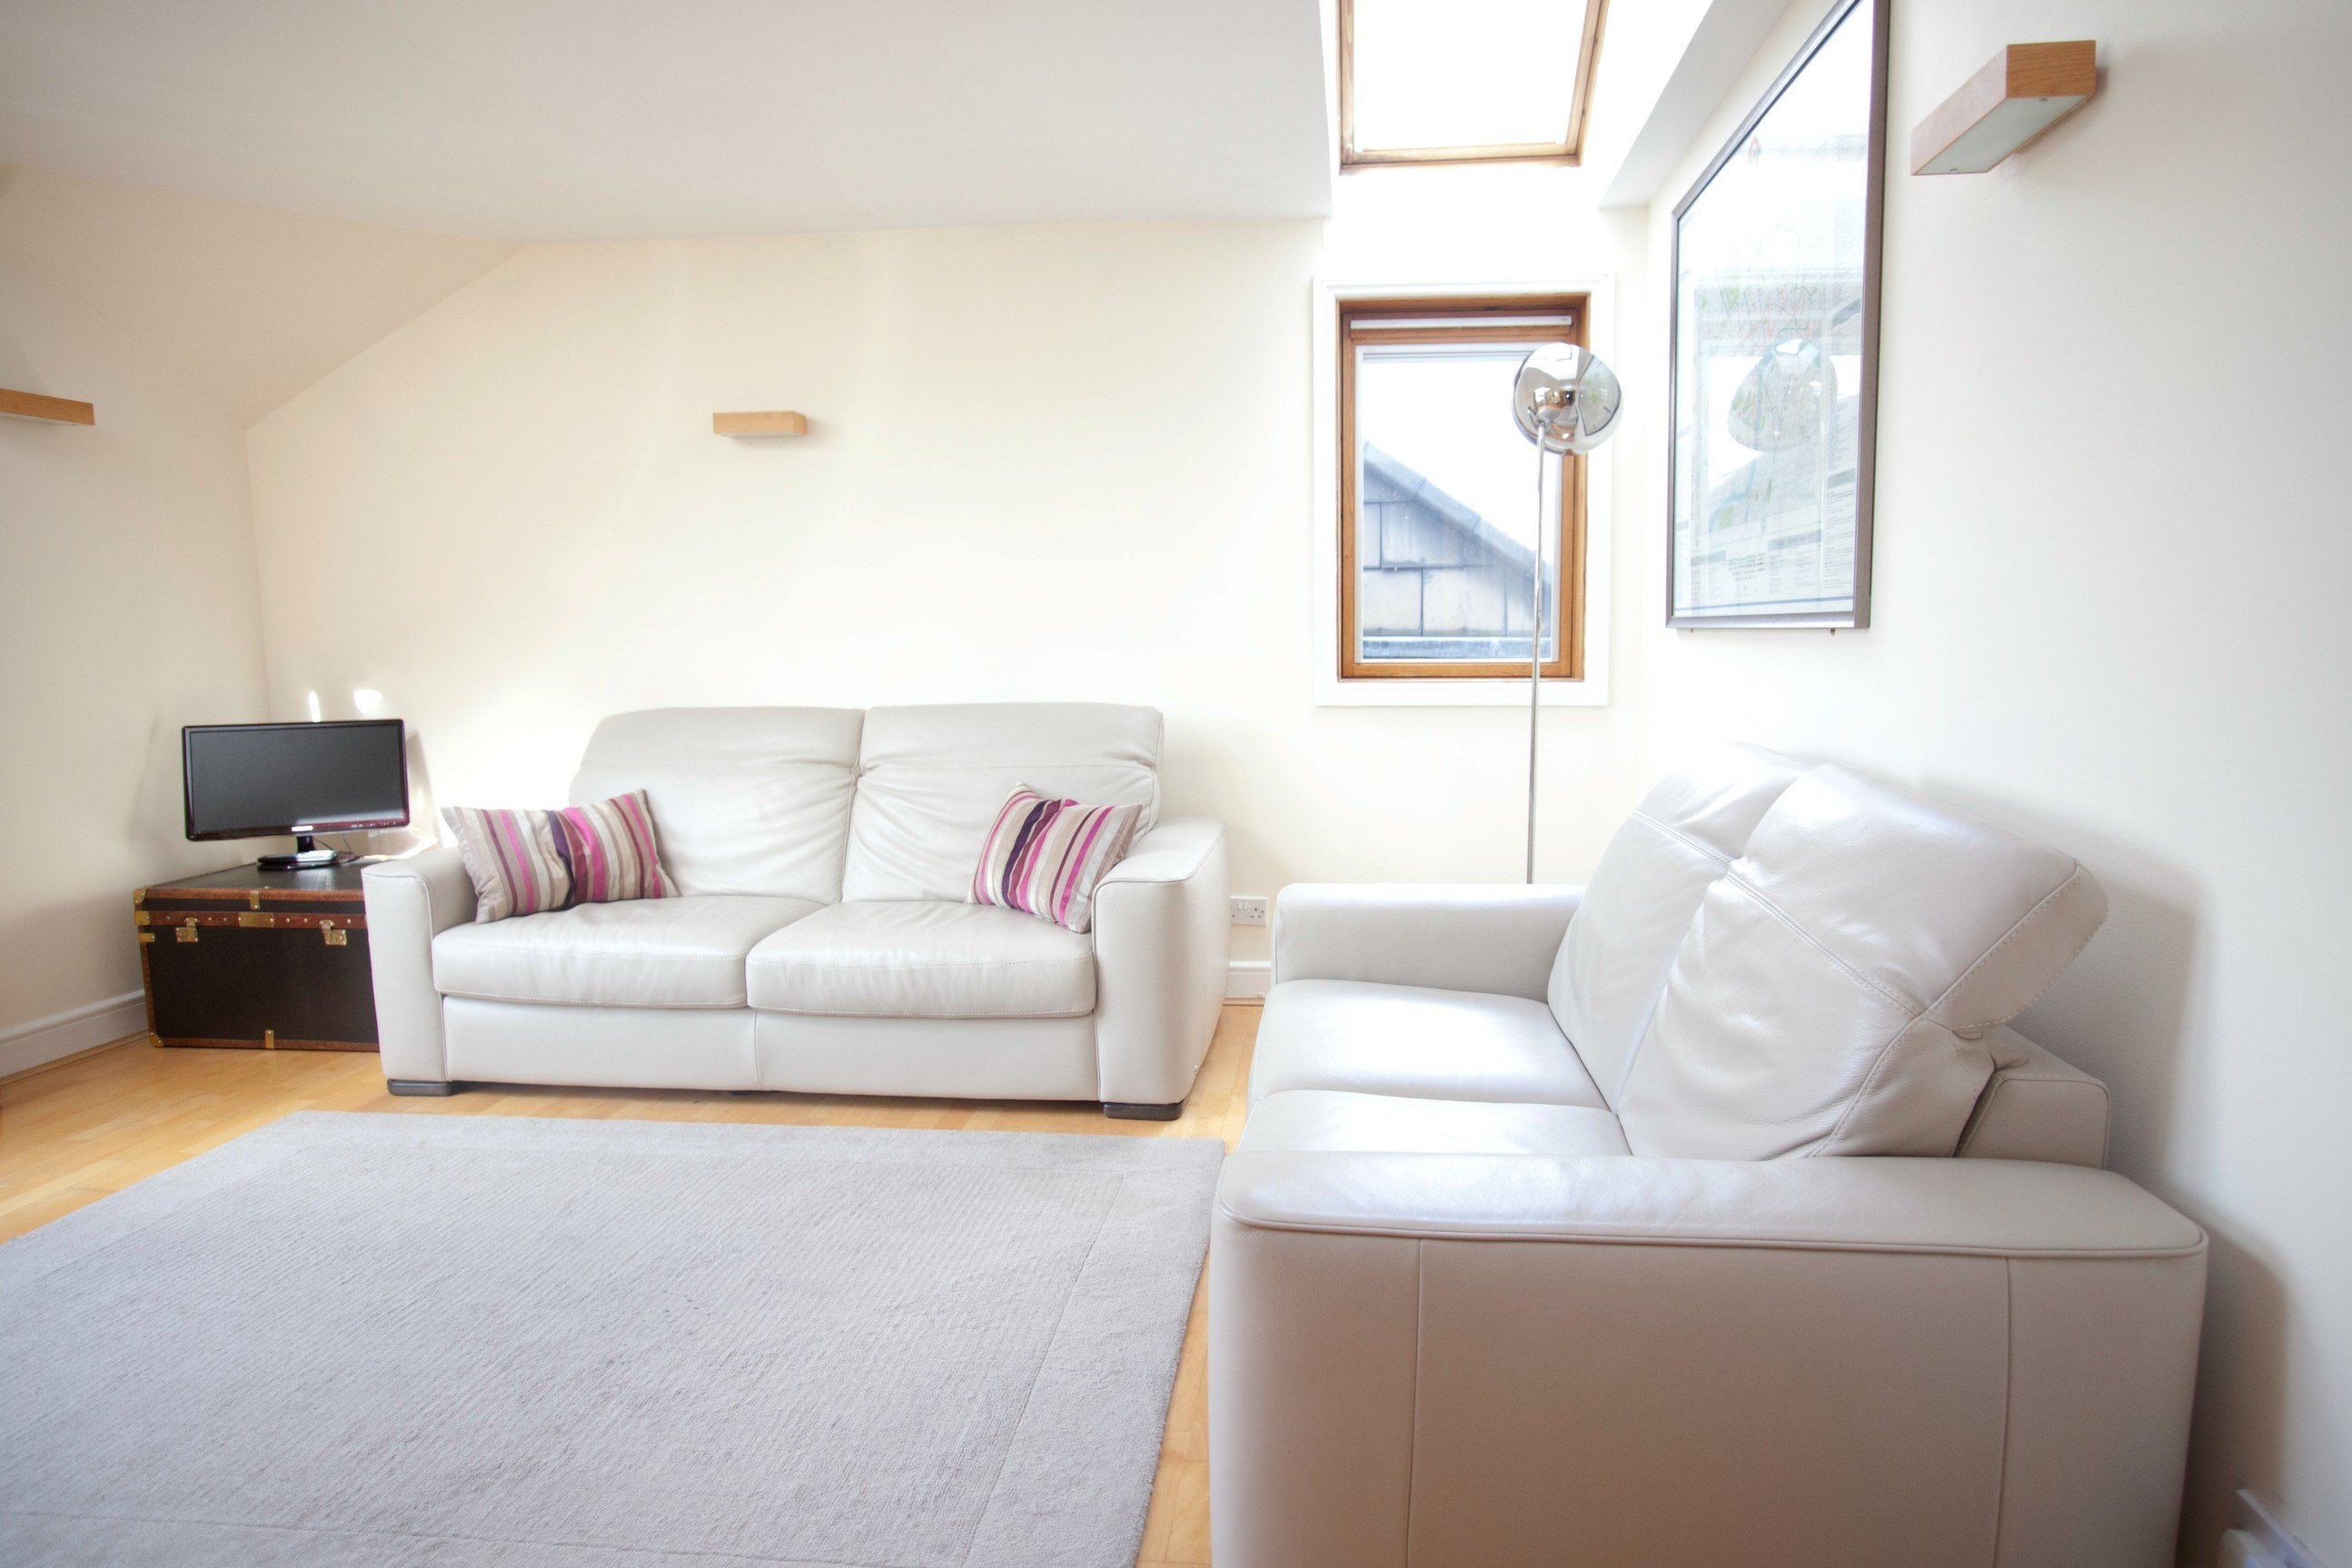 Best 1 Bed Flat To Rent Mill Street London Se1 2De With Pictures Original 1024 x 768